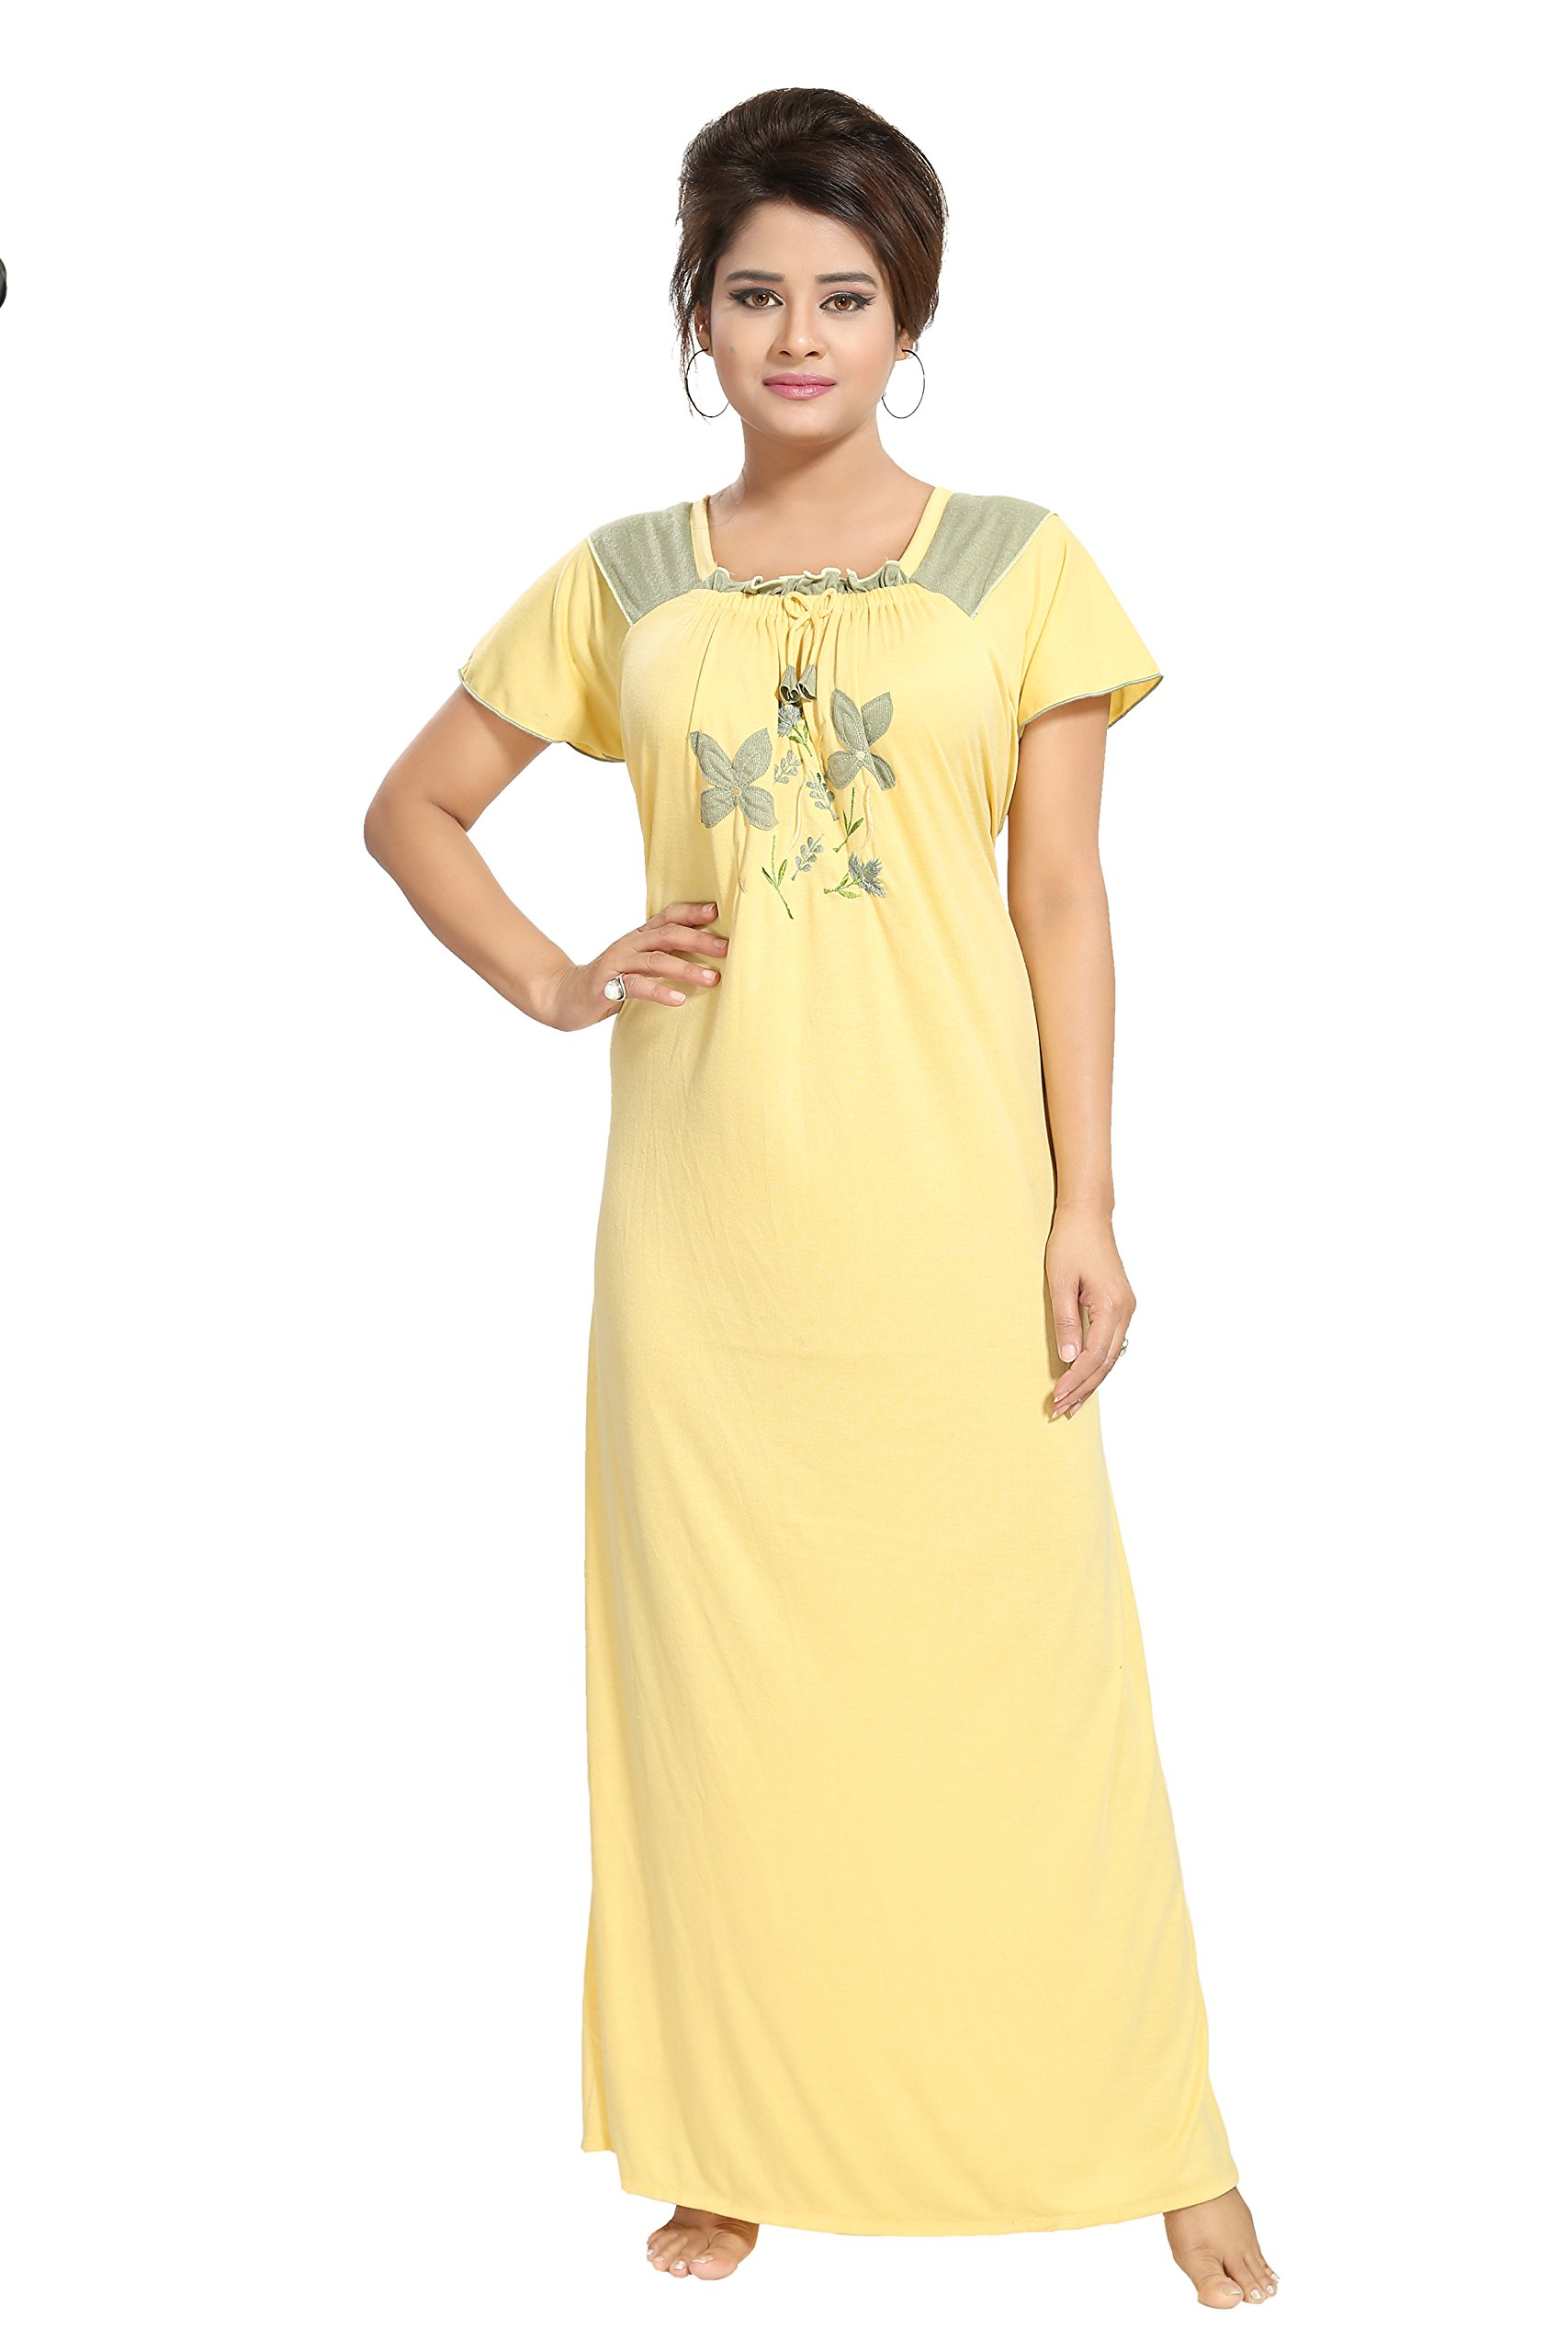 beautiful style hot-selling professional best sale Noty - Women's/Girls Hosiery Cotton Nighty/Night Dress/Night Gown - YeLeJao  Discount offers and Shopping Deals